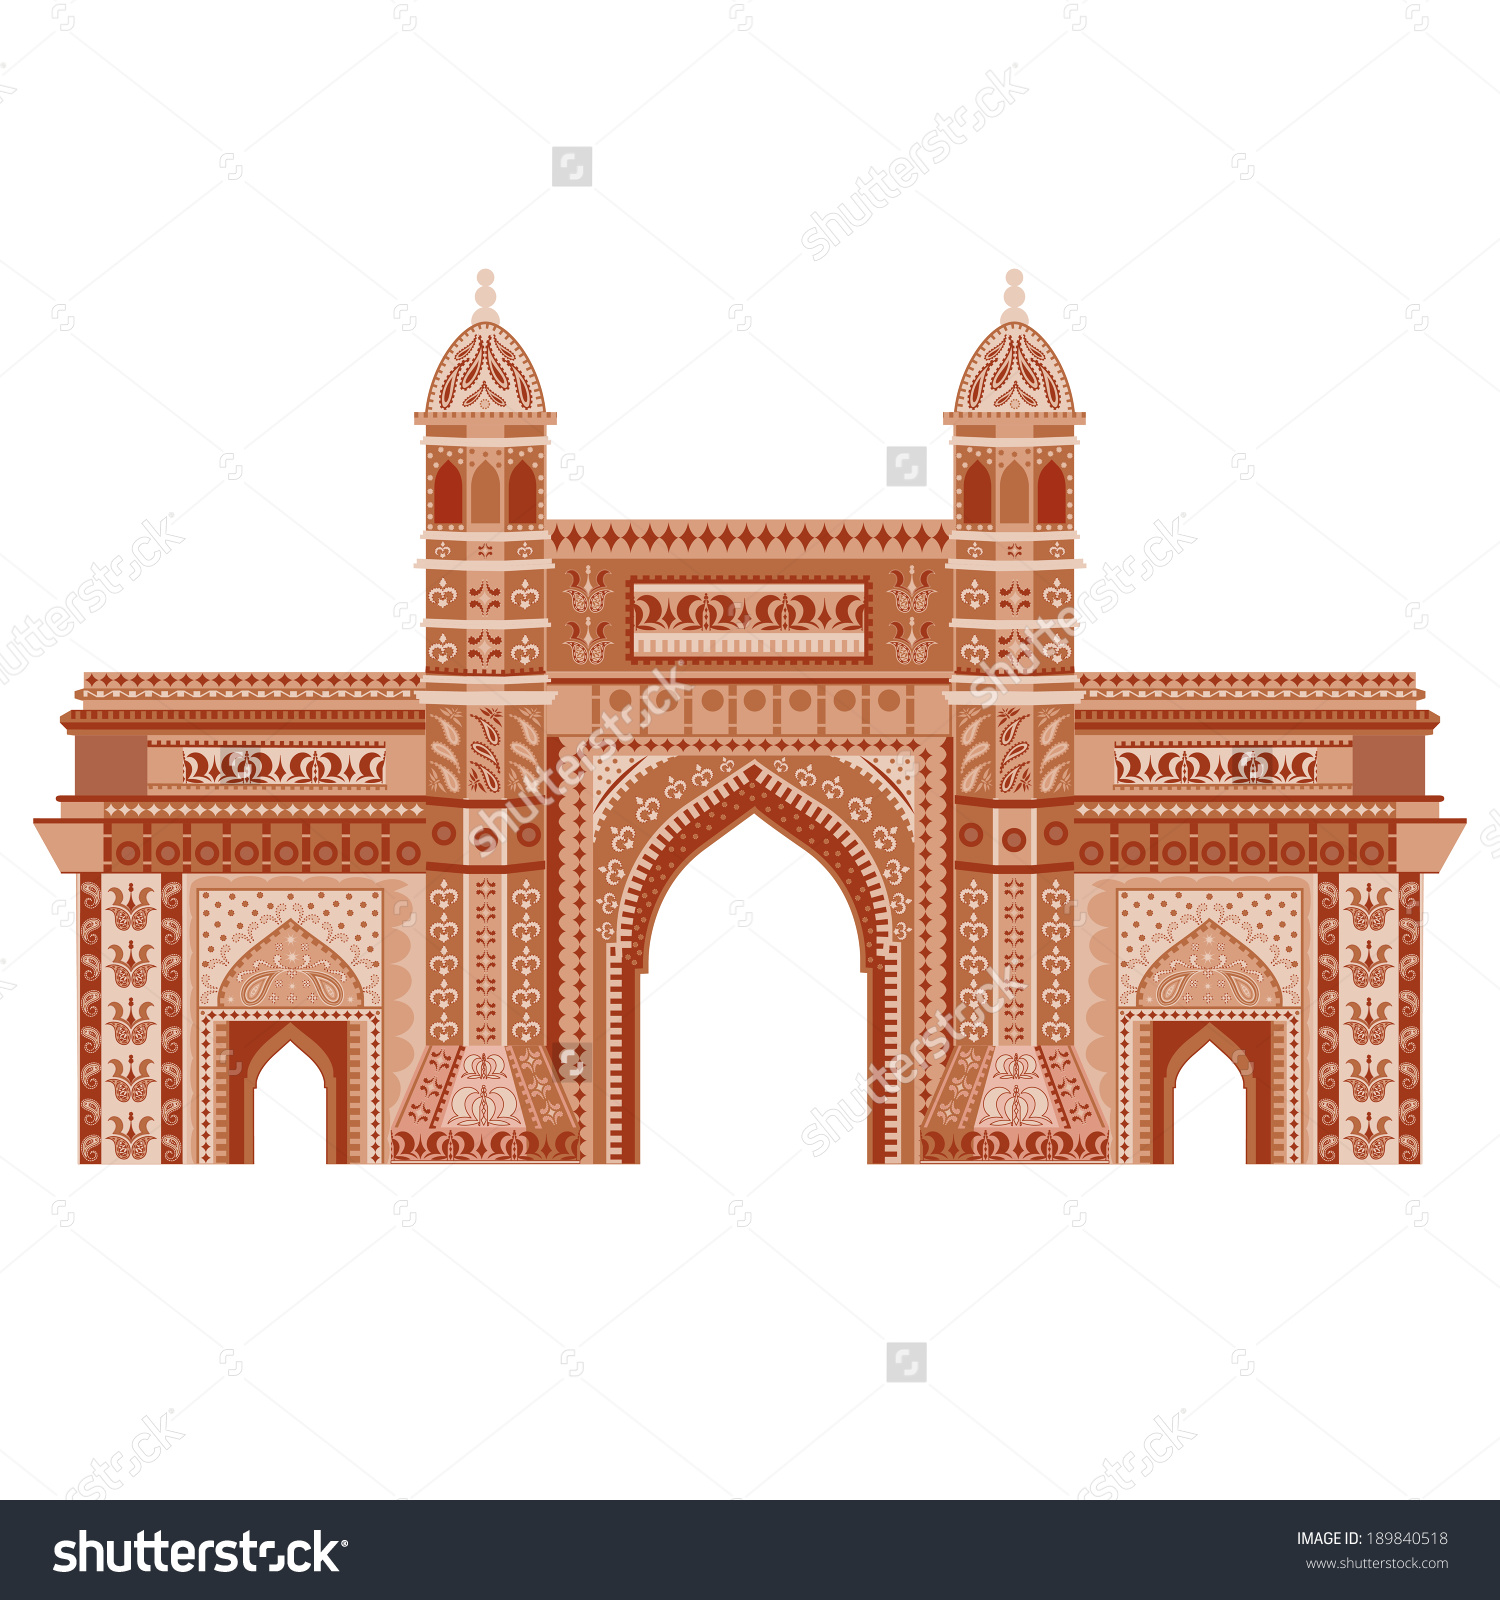 Gateway of india clipart #1